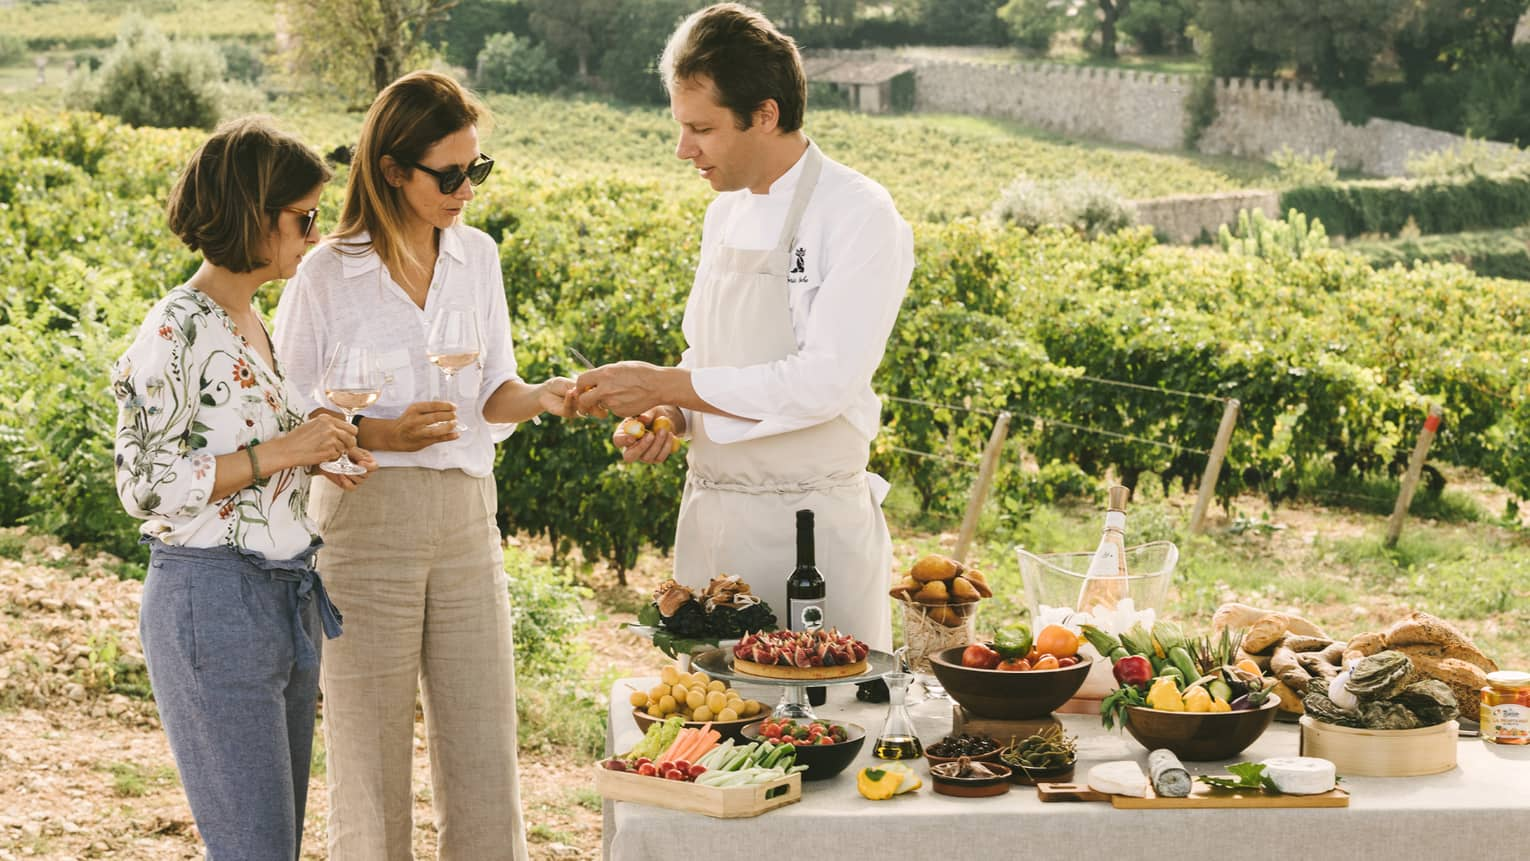 Two women hold wine glasses, stand by chef at outdoor buffet table in garden